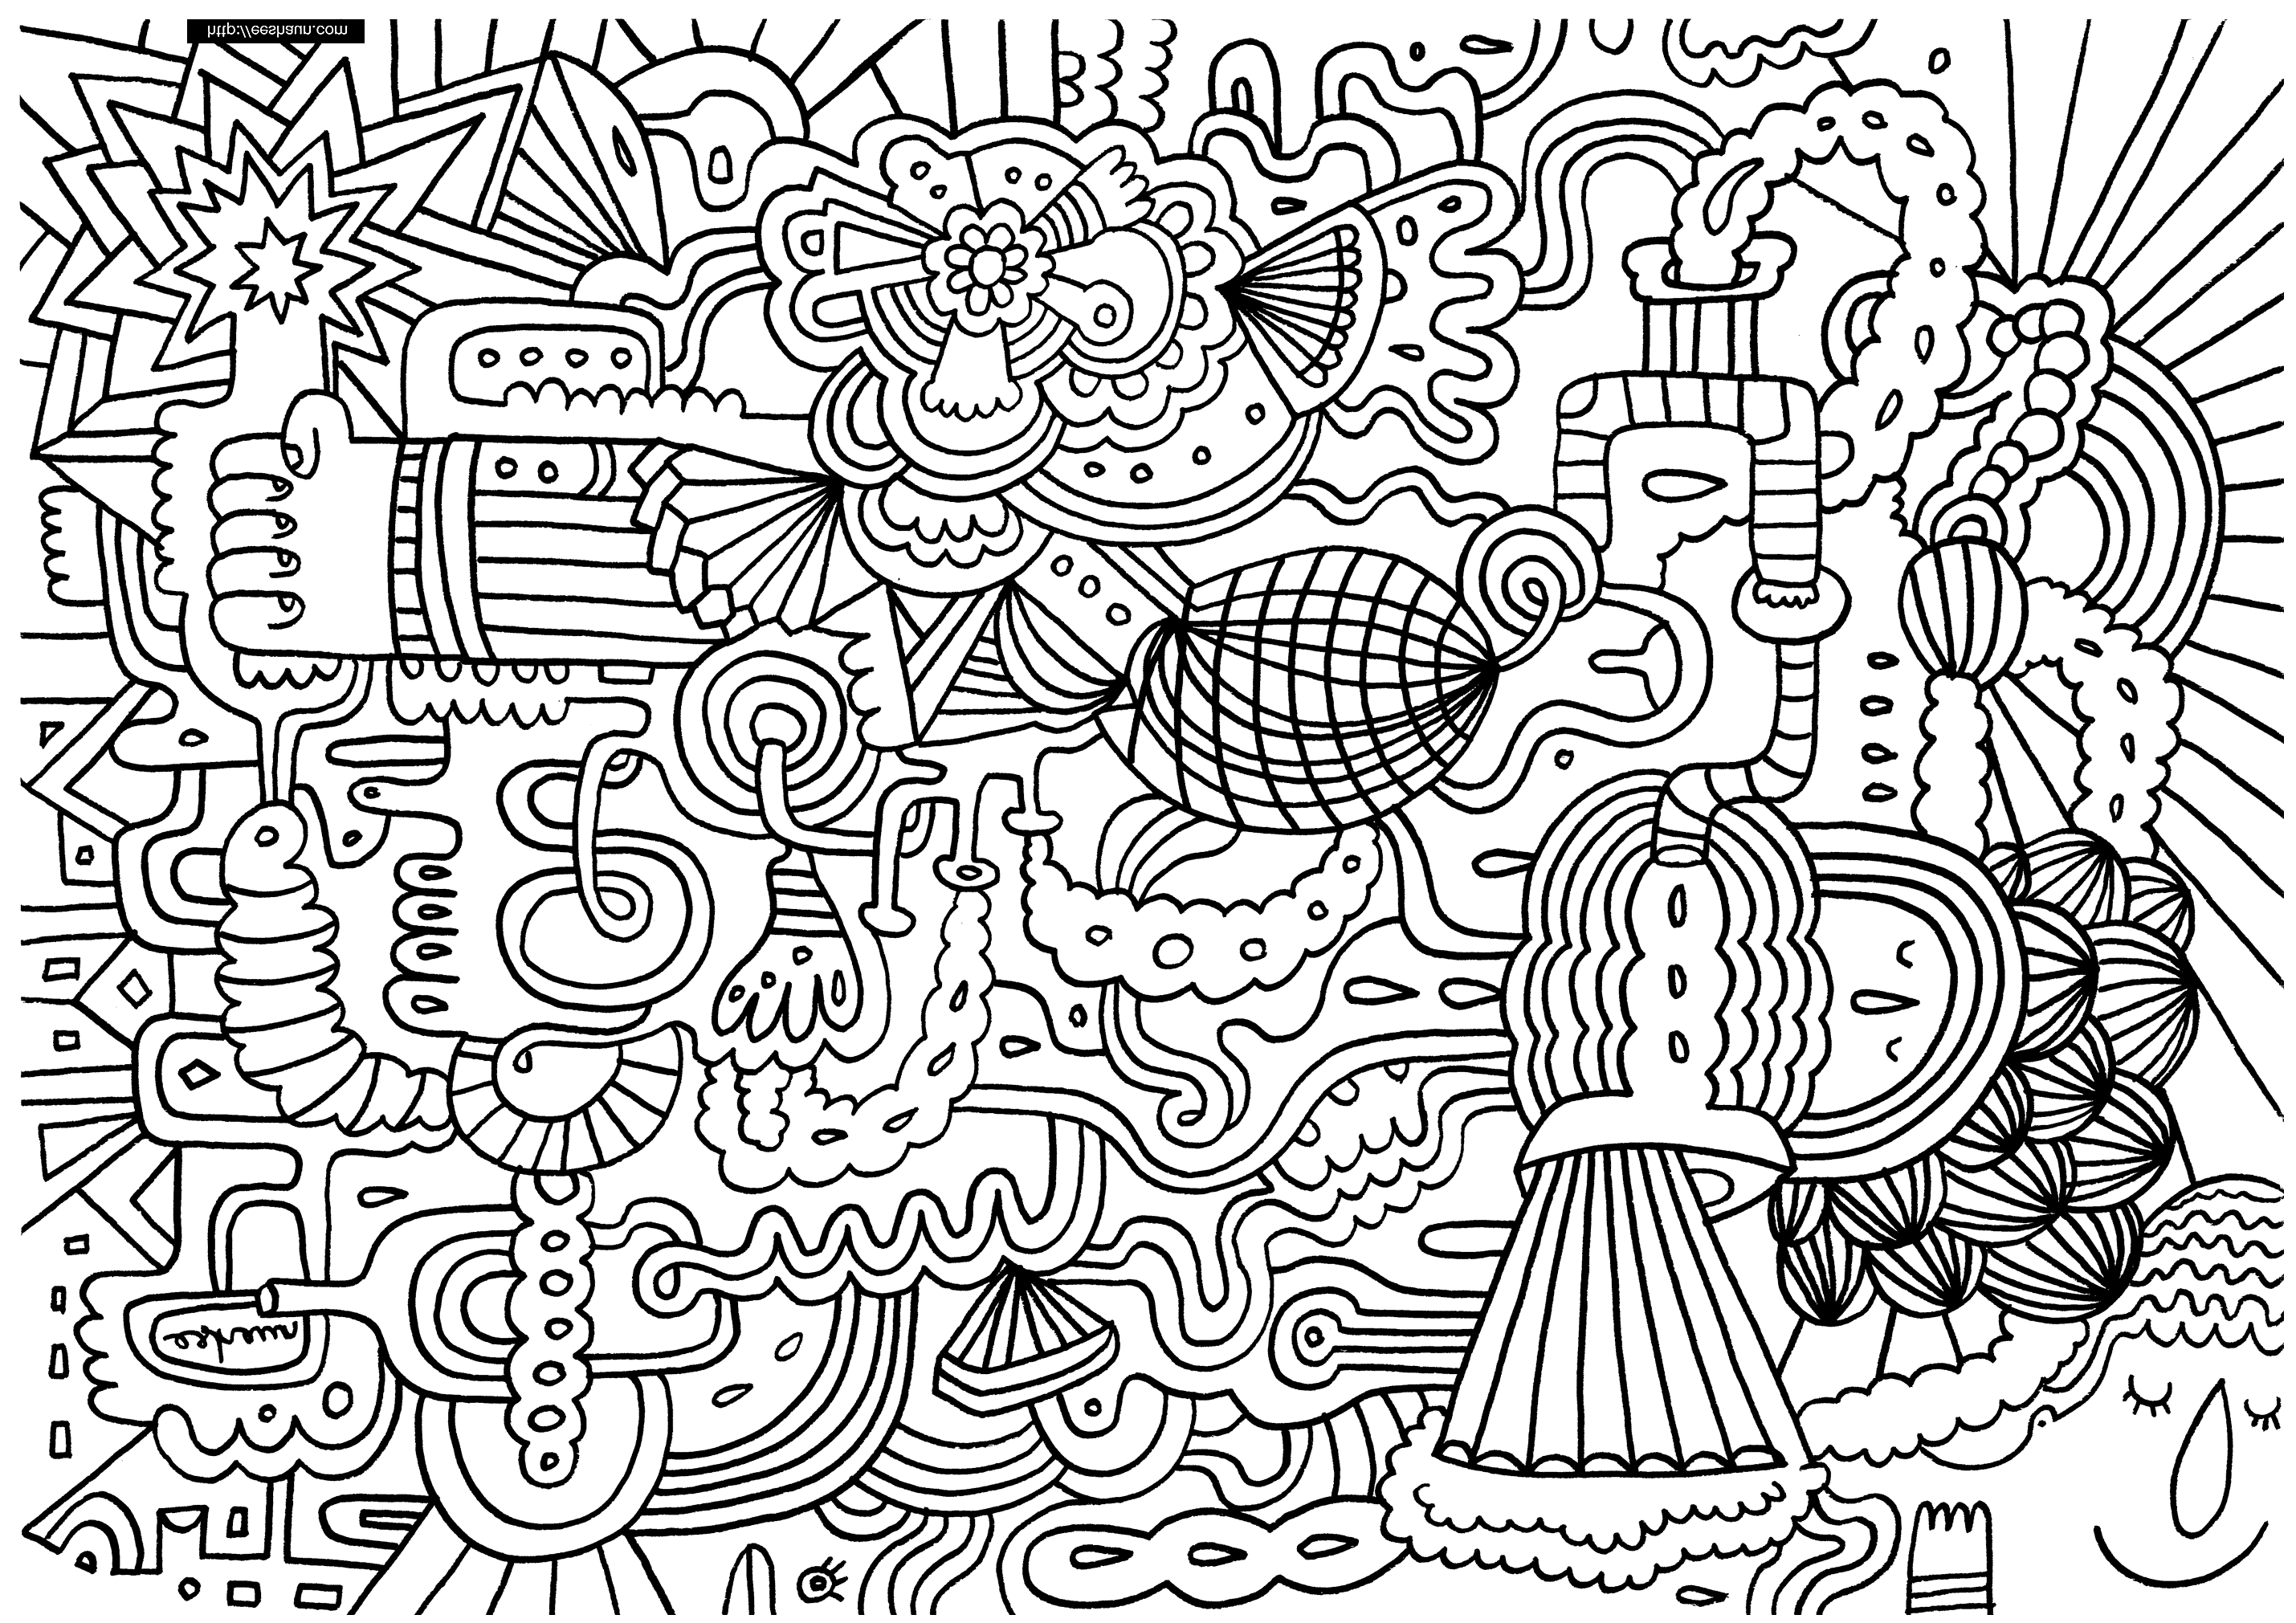 free doodle art to print and color 20 free printable doodle art coloring pages for adults to art and doodle free print color